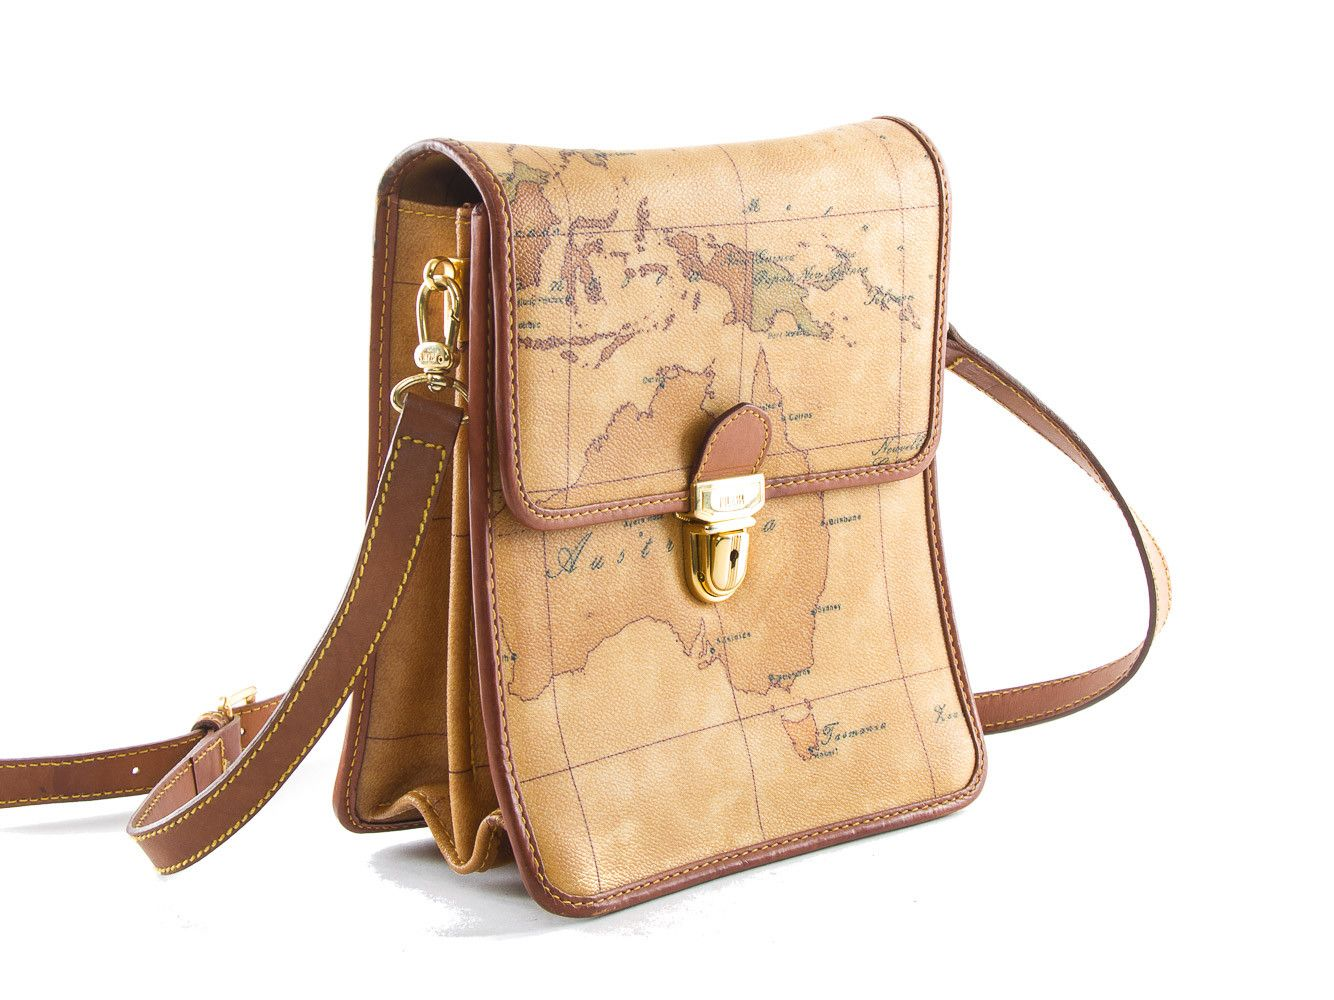 Authentic Alviero Martini Cle world map brown shoulder bag on map shoes, map luggage, map boots, map crossbody, map skirt, map phone case, map jacket, map scarf, map white, map trunk, map suitcase, map wallet, map sweater,